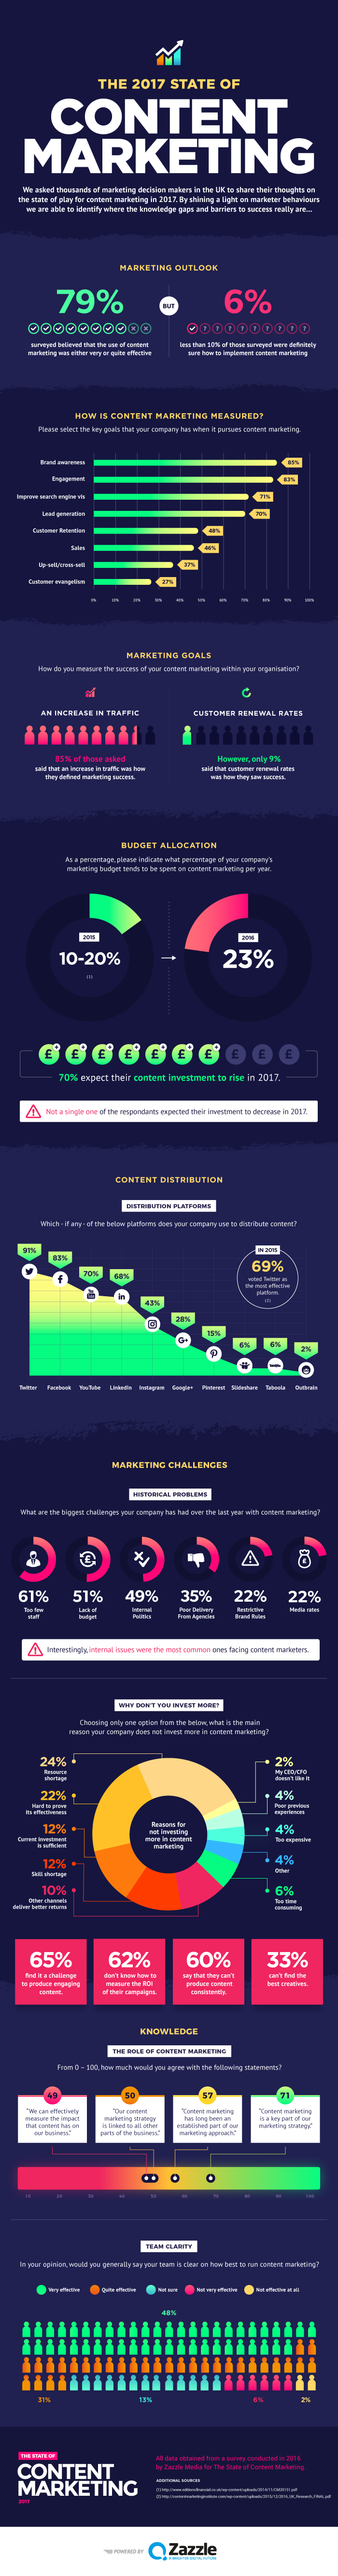 The 2017 State of Content Marketing [Infographic]